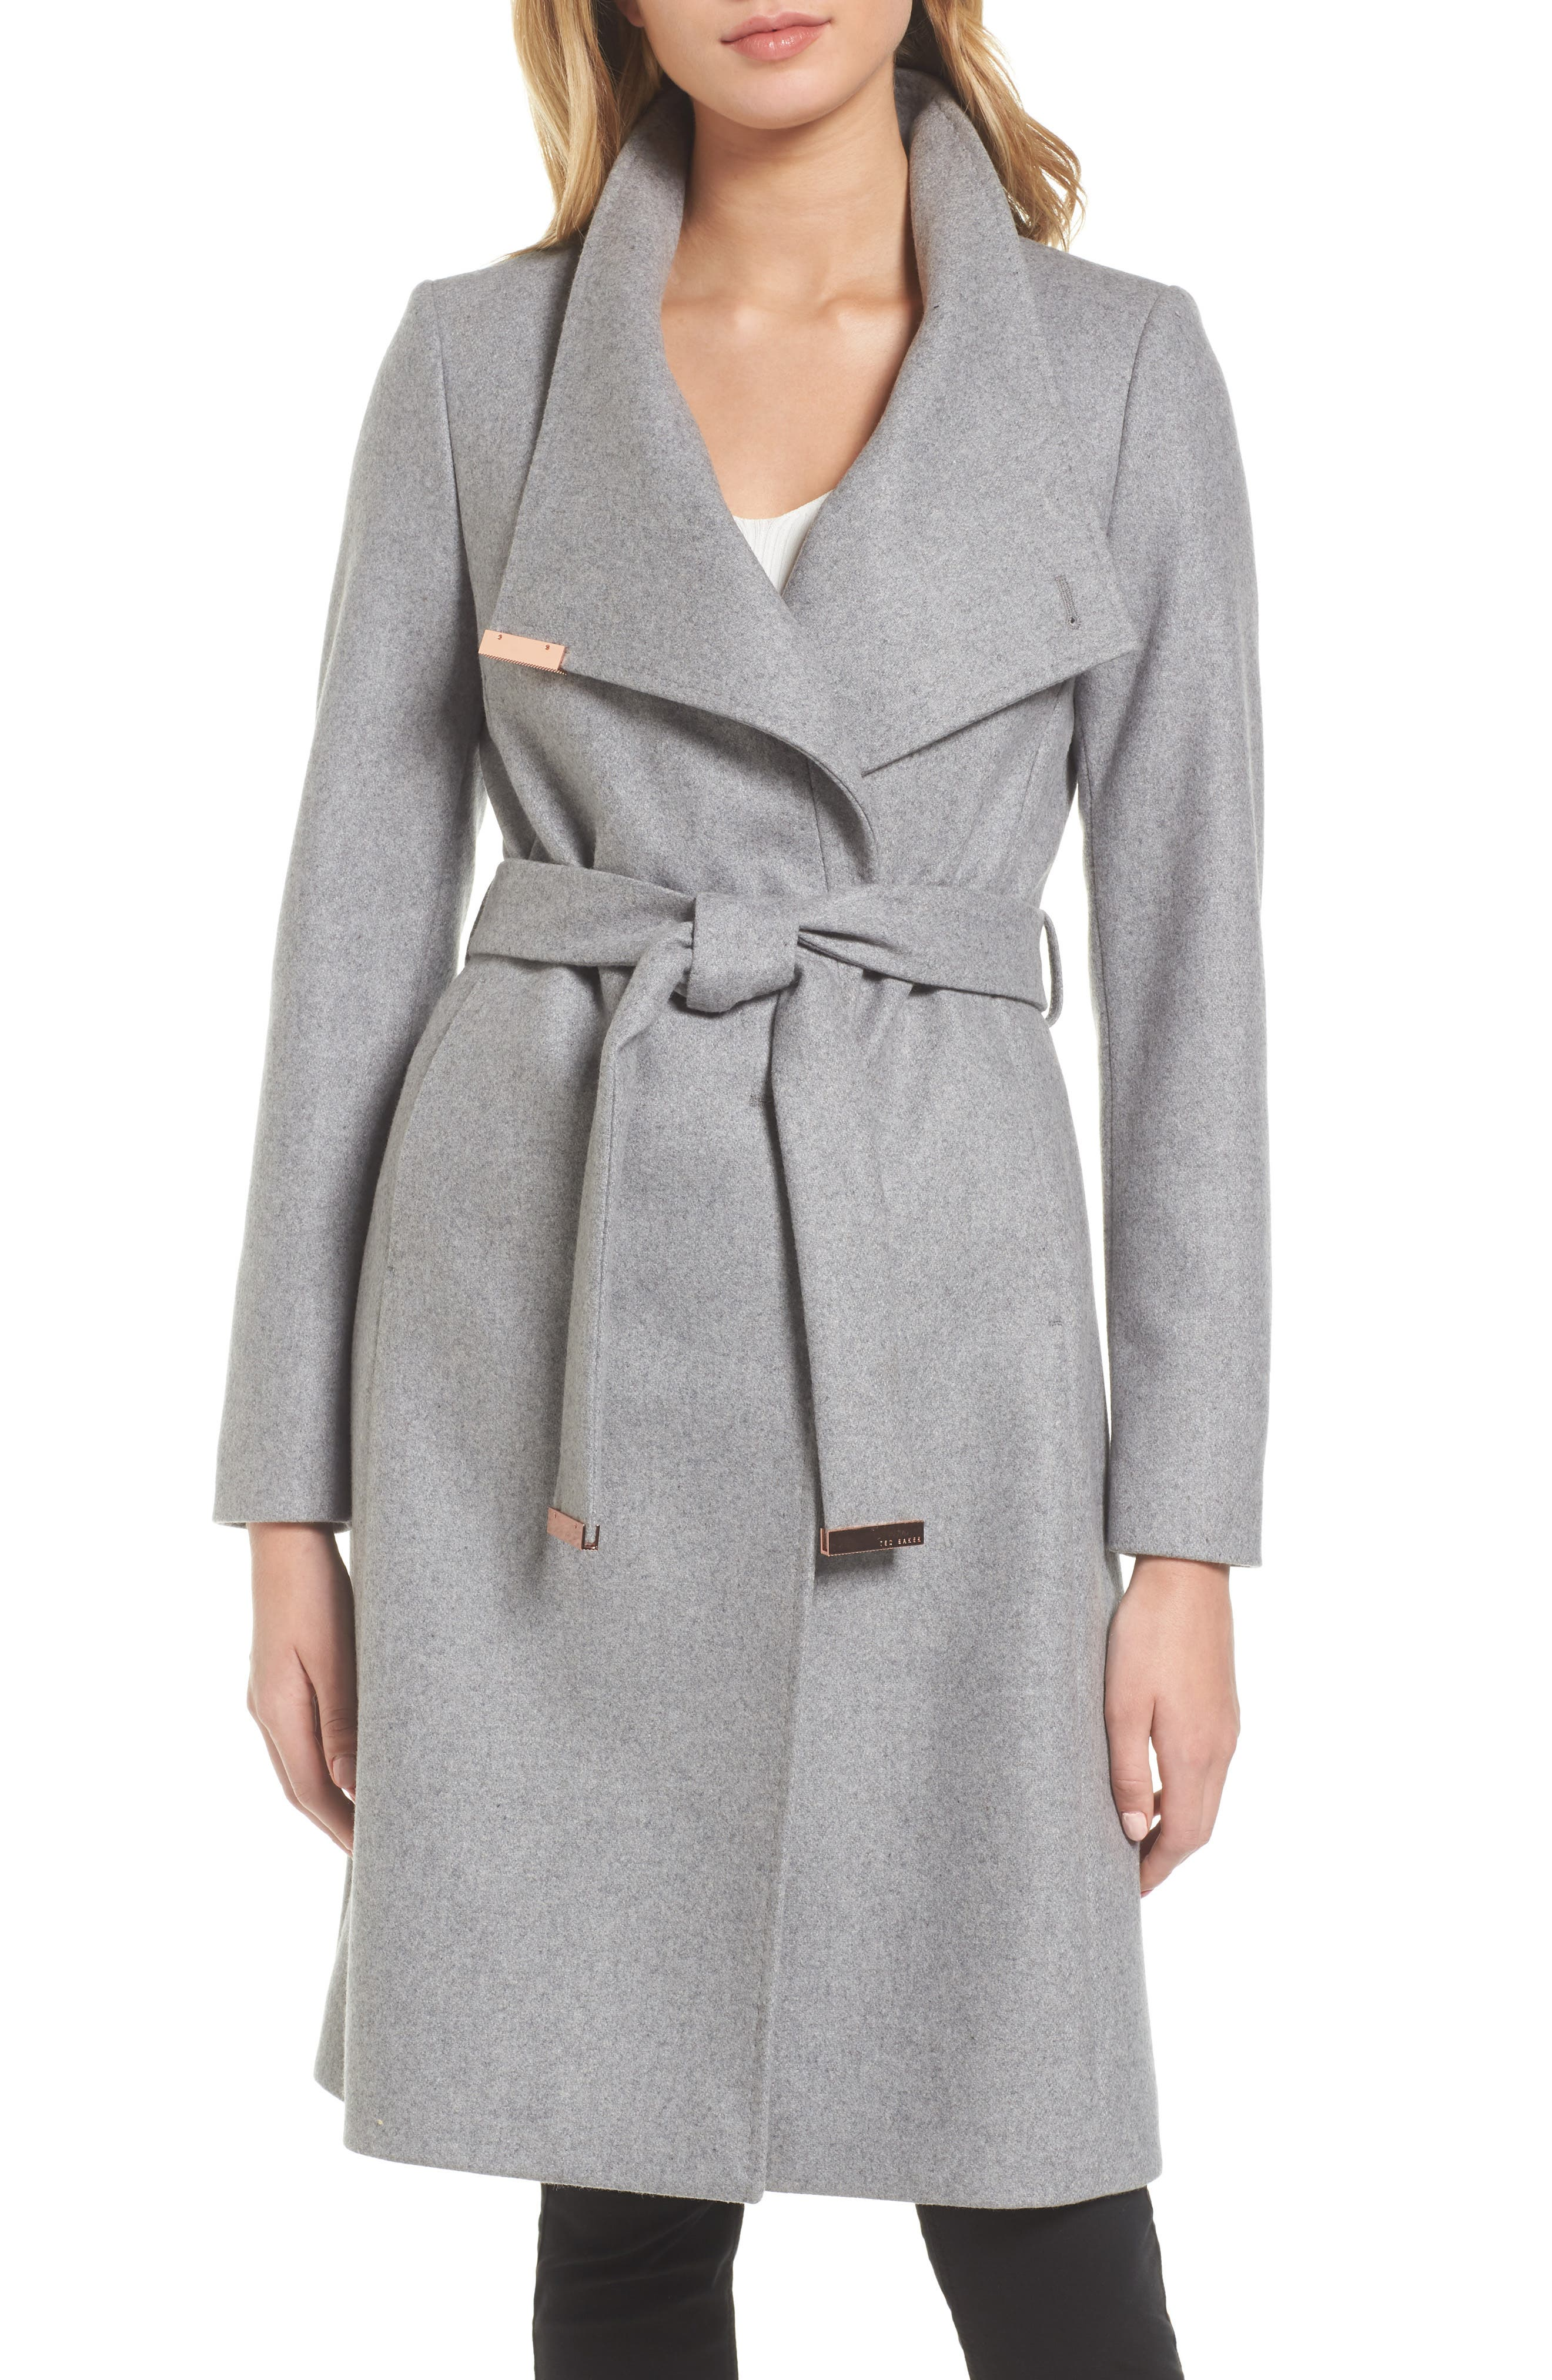 Women's Grey Wool Coats | Nordstrom | Nordstrom